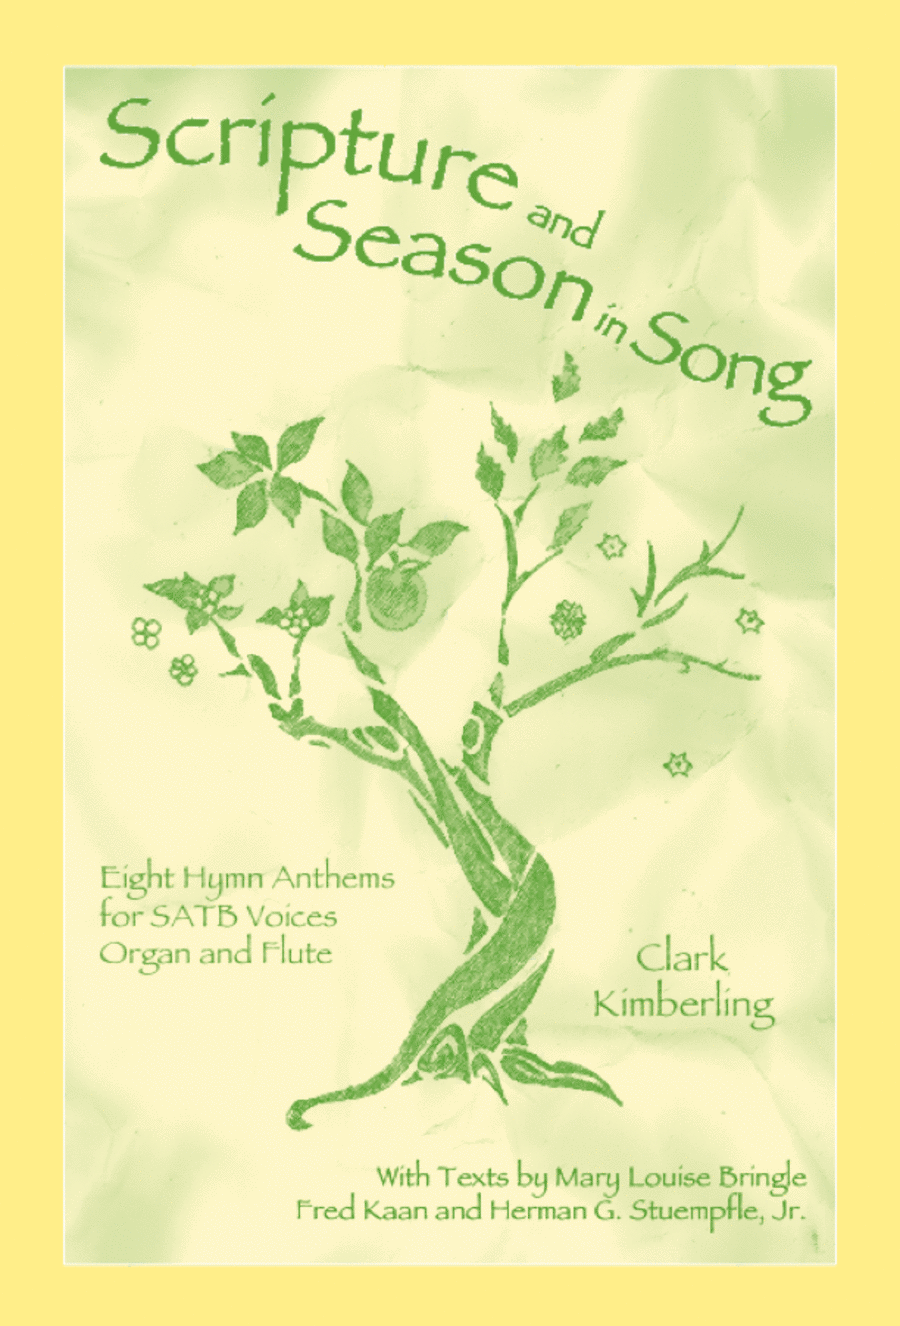 Scripture and Season in Song (Flute part)